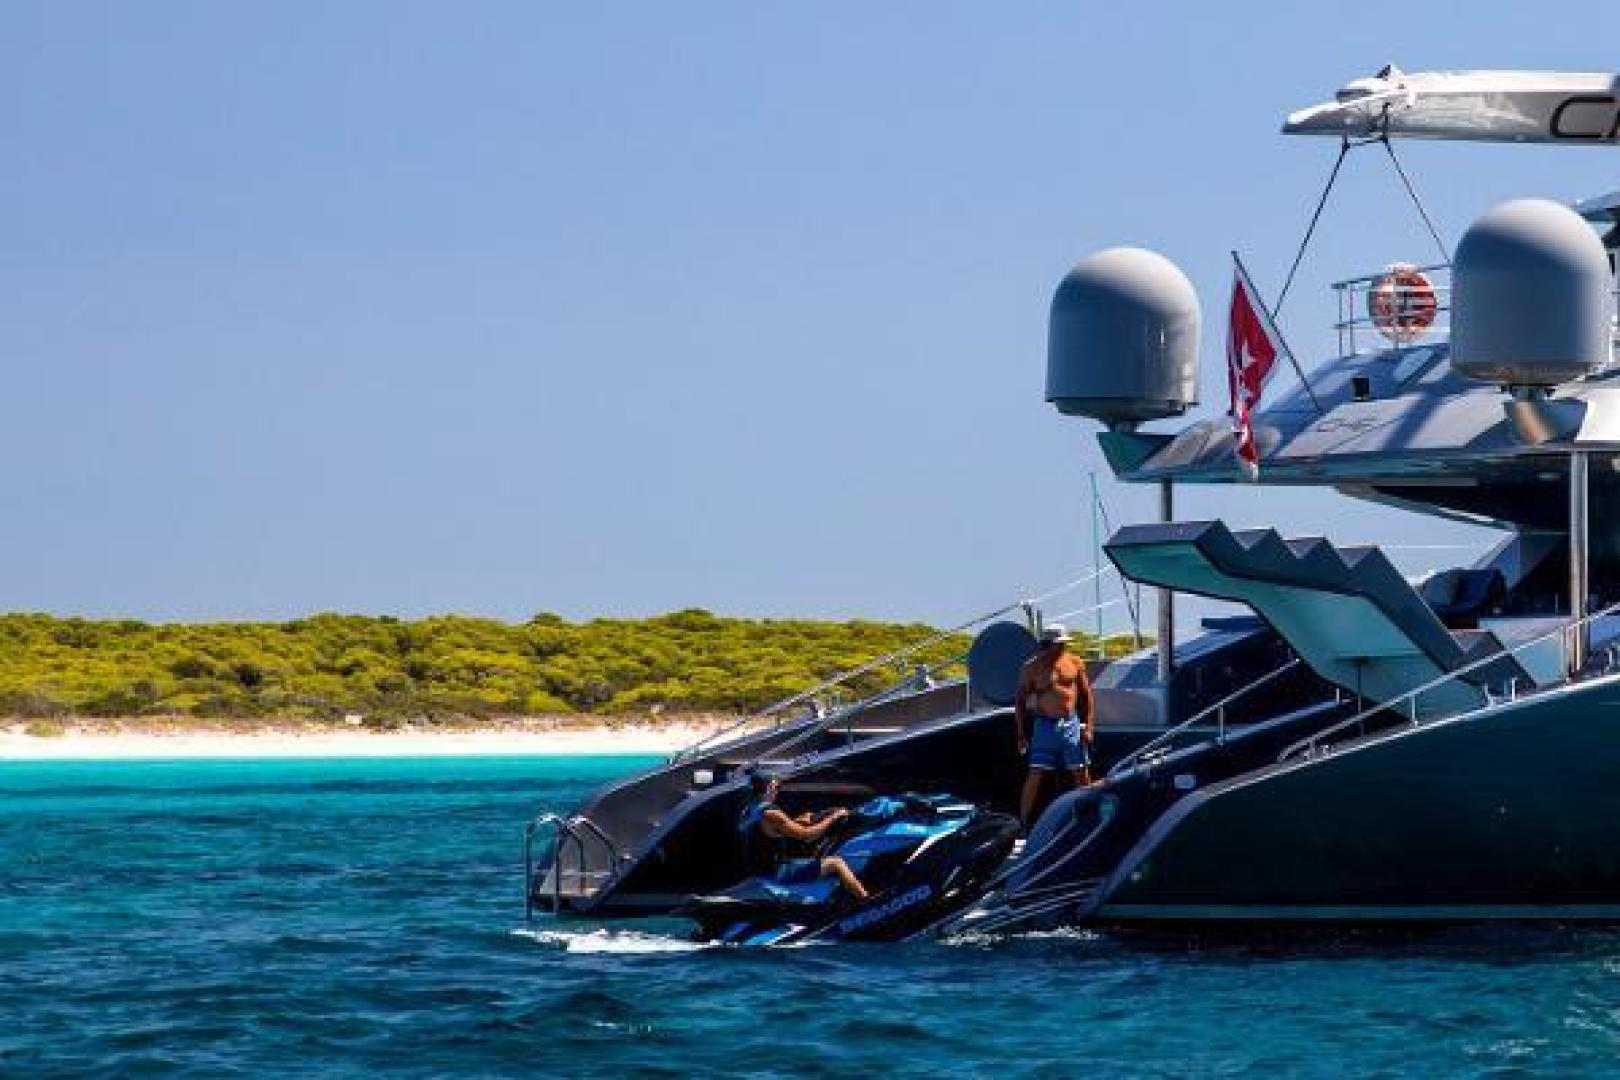 Catamaran-Blue Coast Yachts  2011-CARTOUCHE Antigua & Barbuda-1296558 | Thumbnail